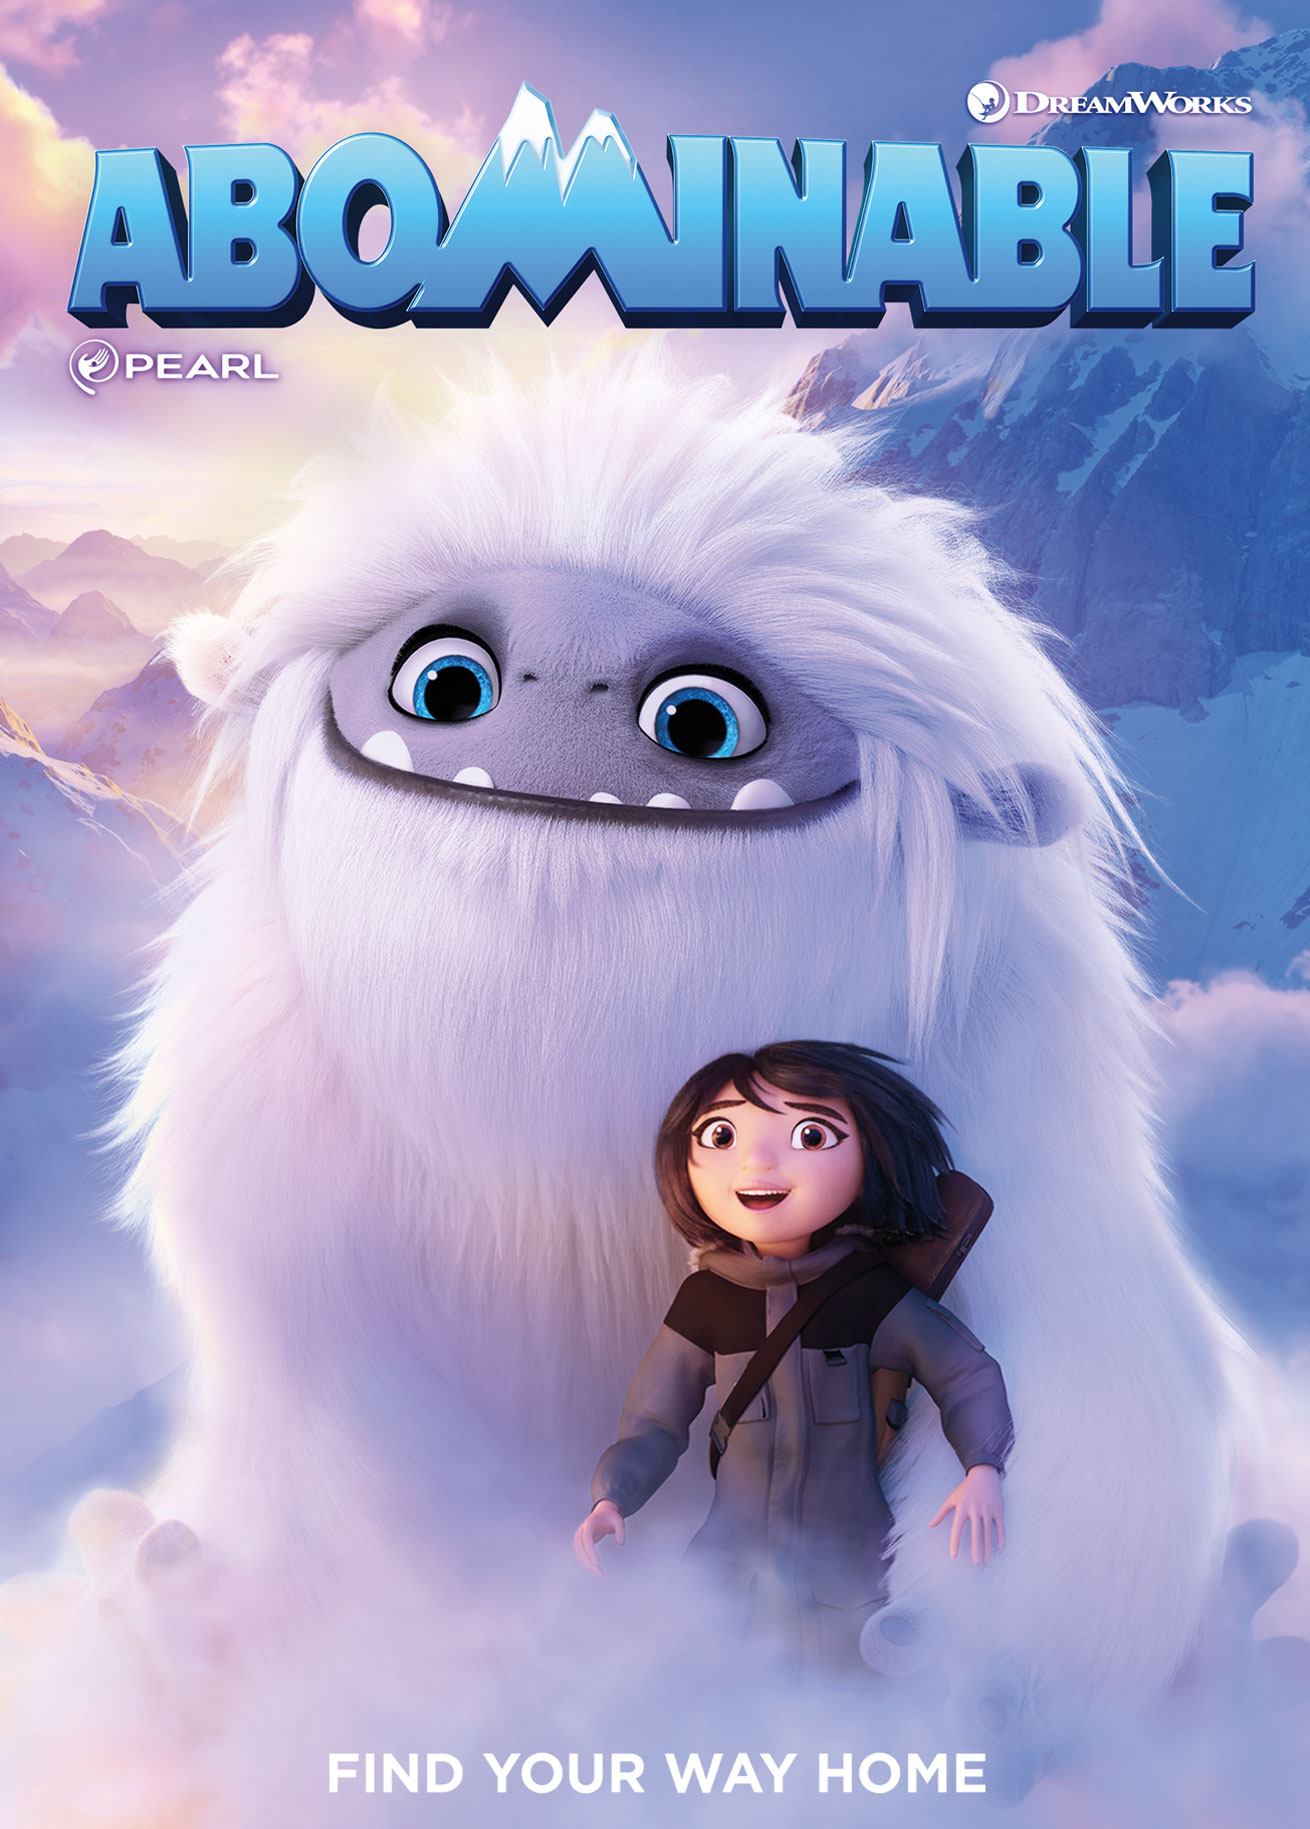 Family Movie: Abominable